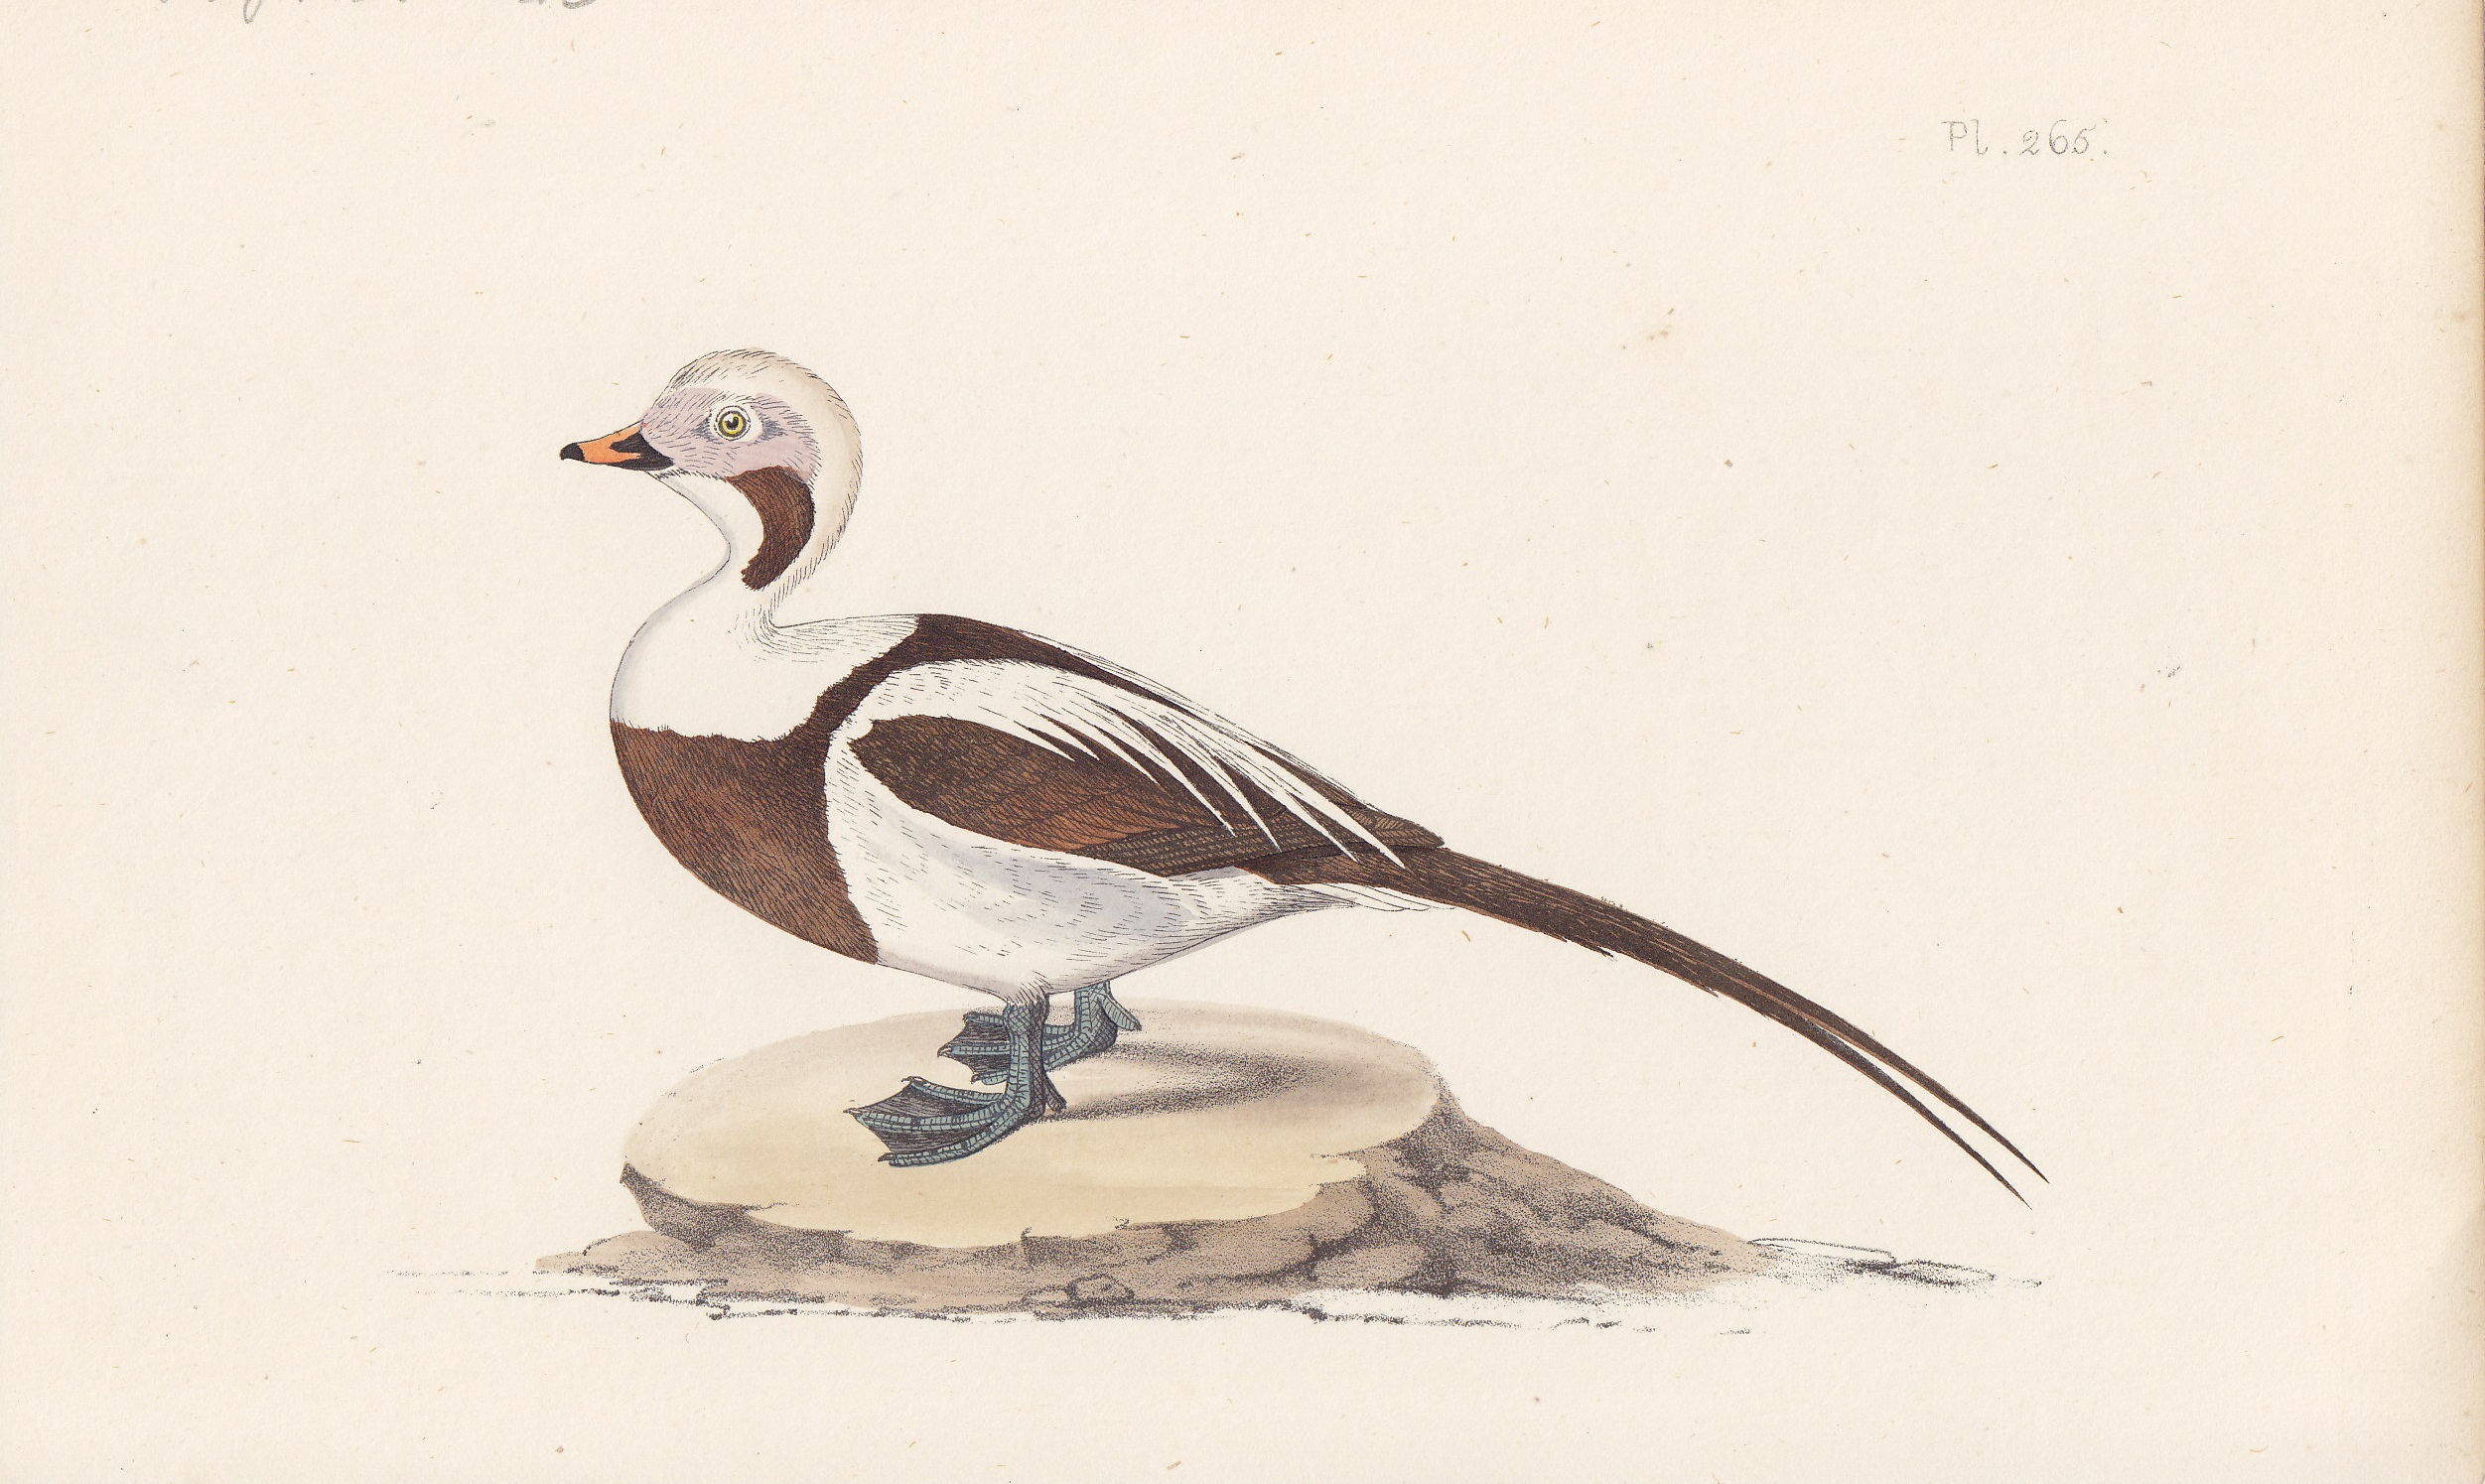 Mig tailed Duck